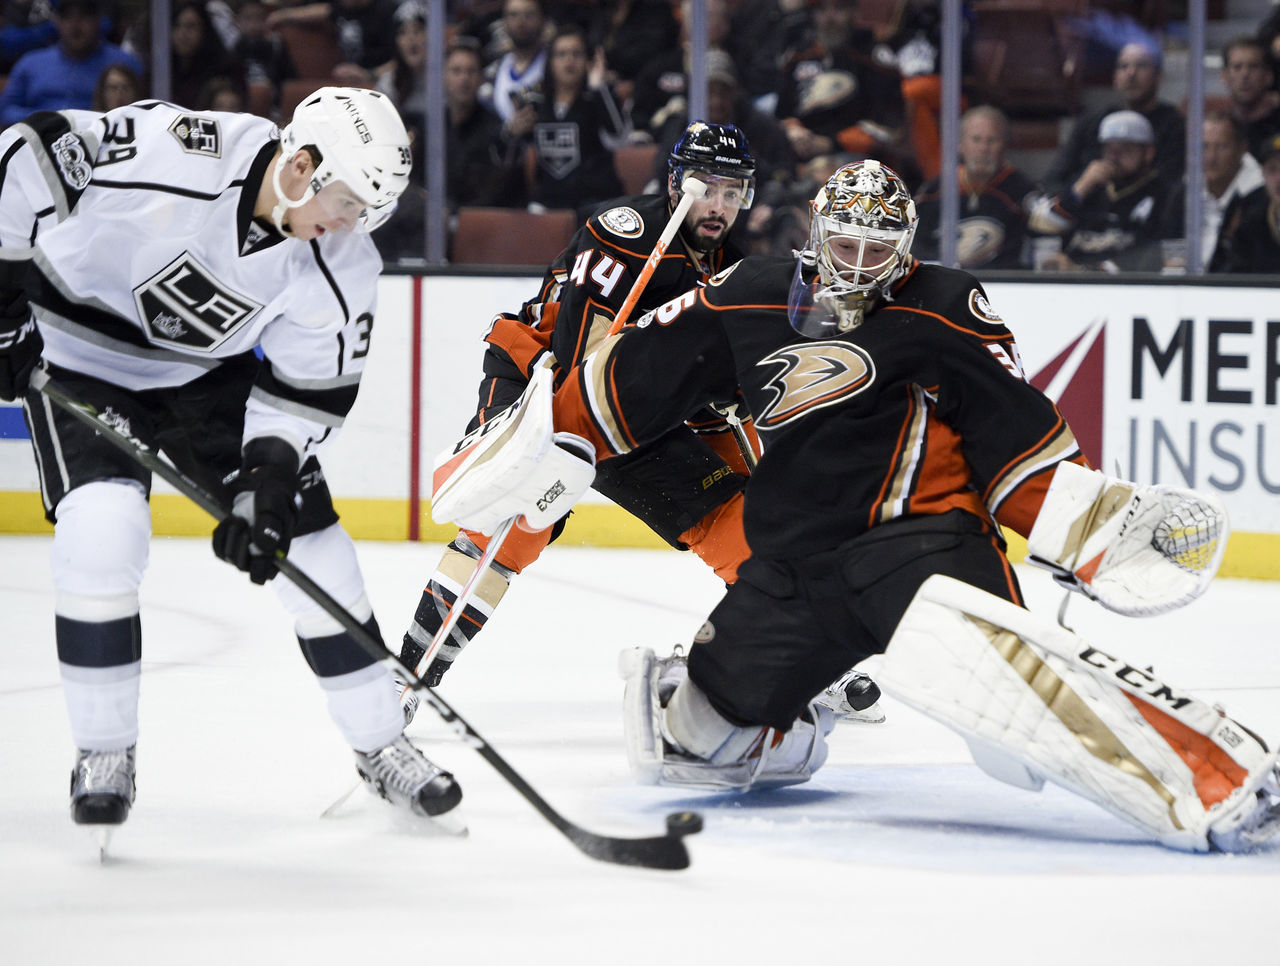 Cropped_2017-02-20t044002z_1066541314_nocid_rtrmadp_3_nhl-los-angeles-kings-at-anaheim-ducks